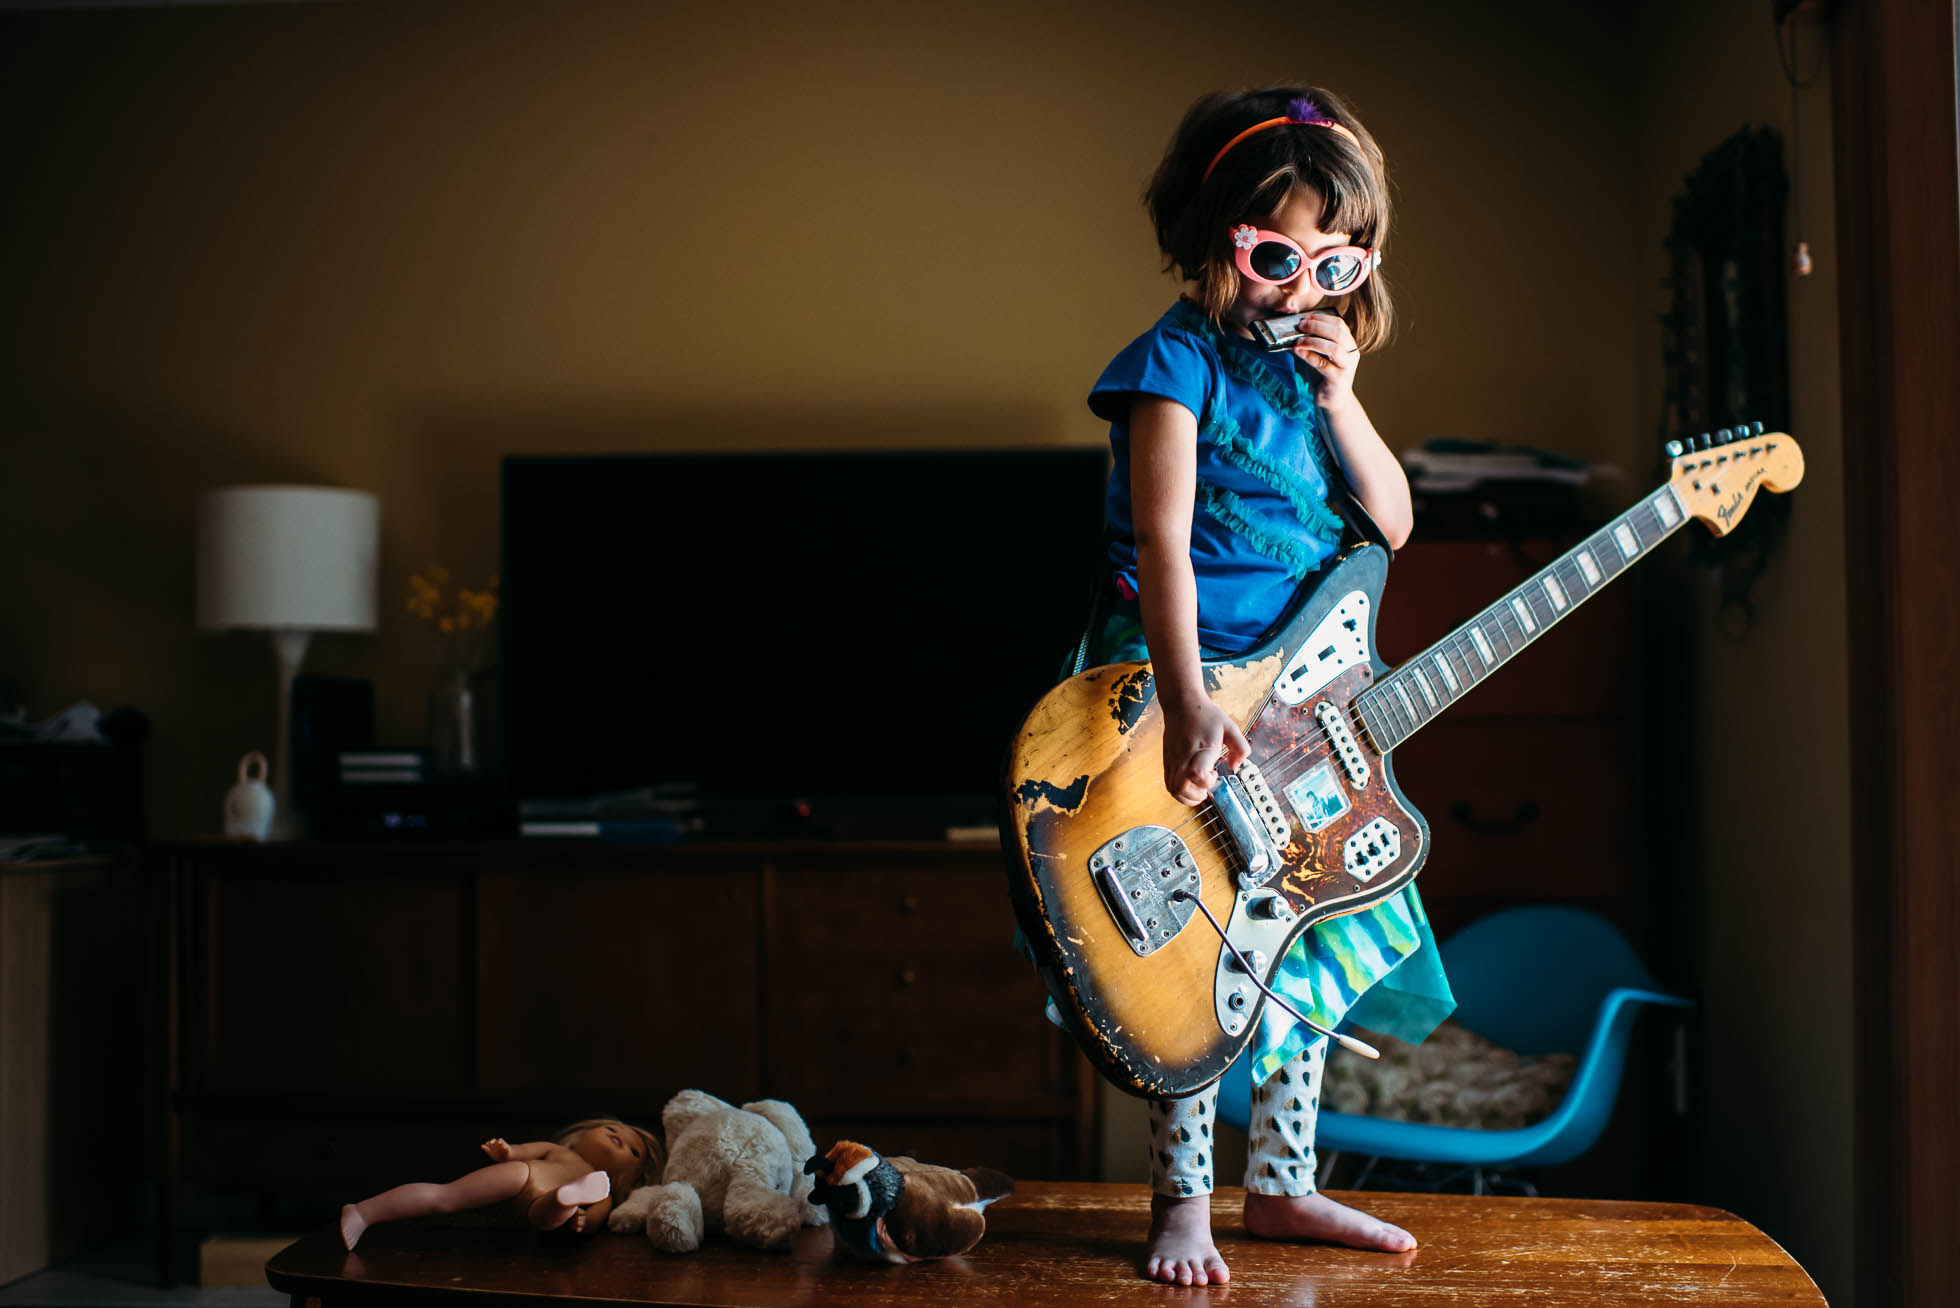 Girl in sunglasses playing guitar.